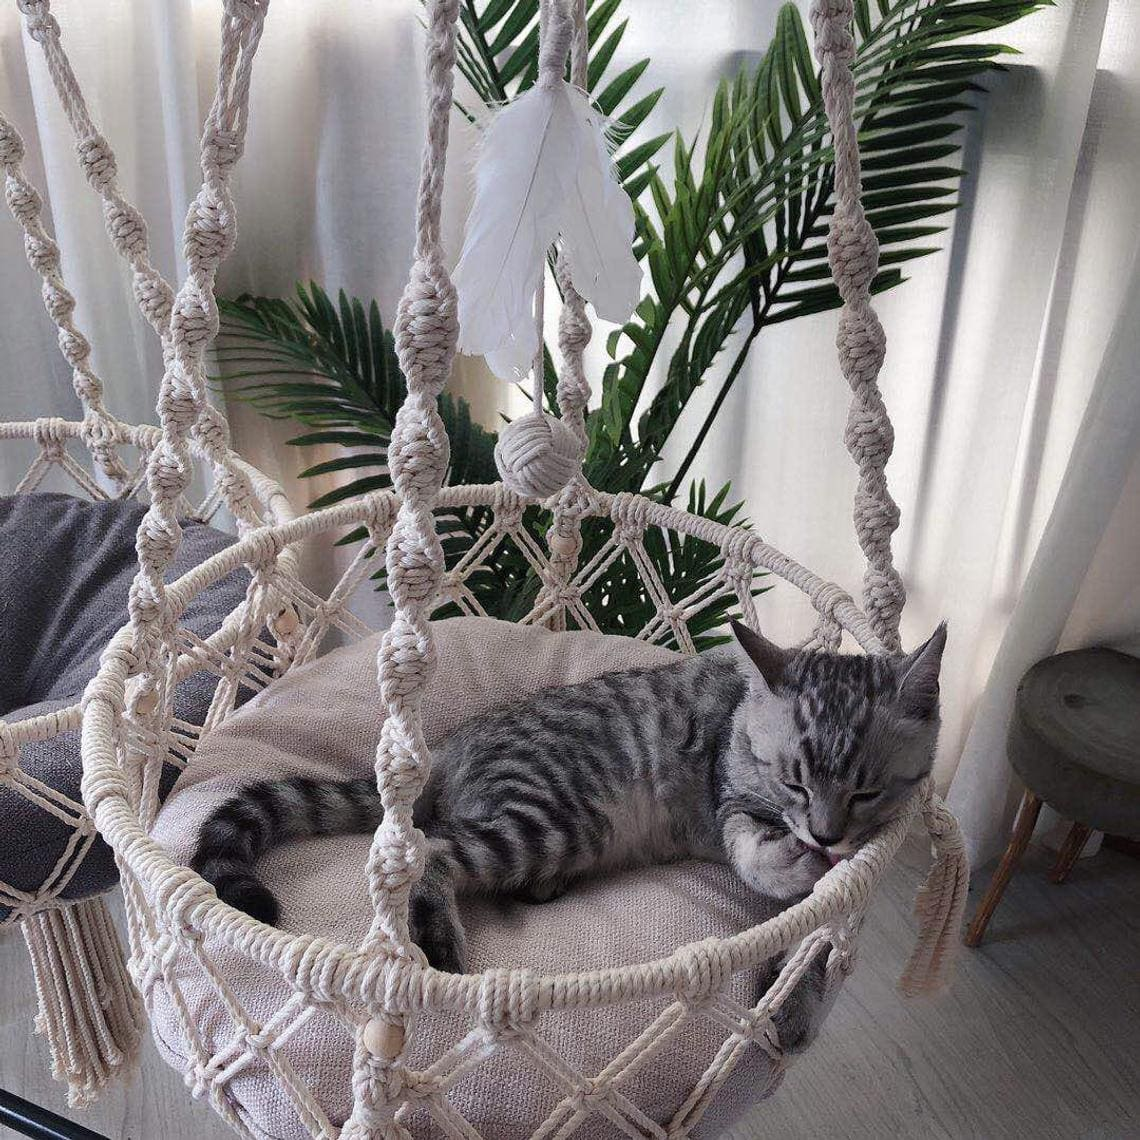 cat hammock - 18 amazing pet furniture ideas that are perfect solutions for small spaces